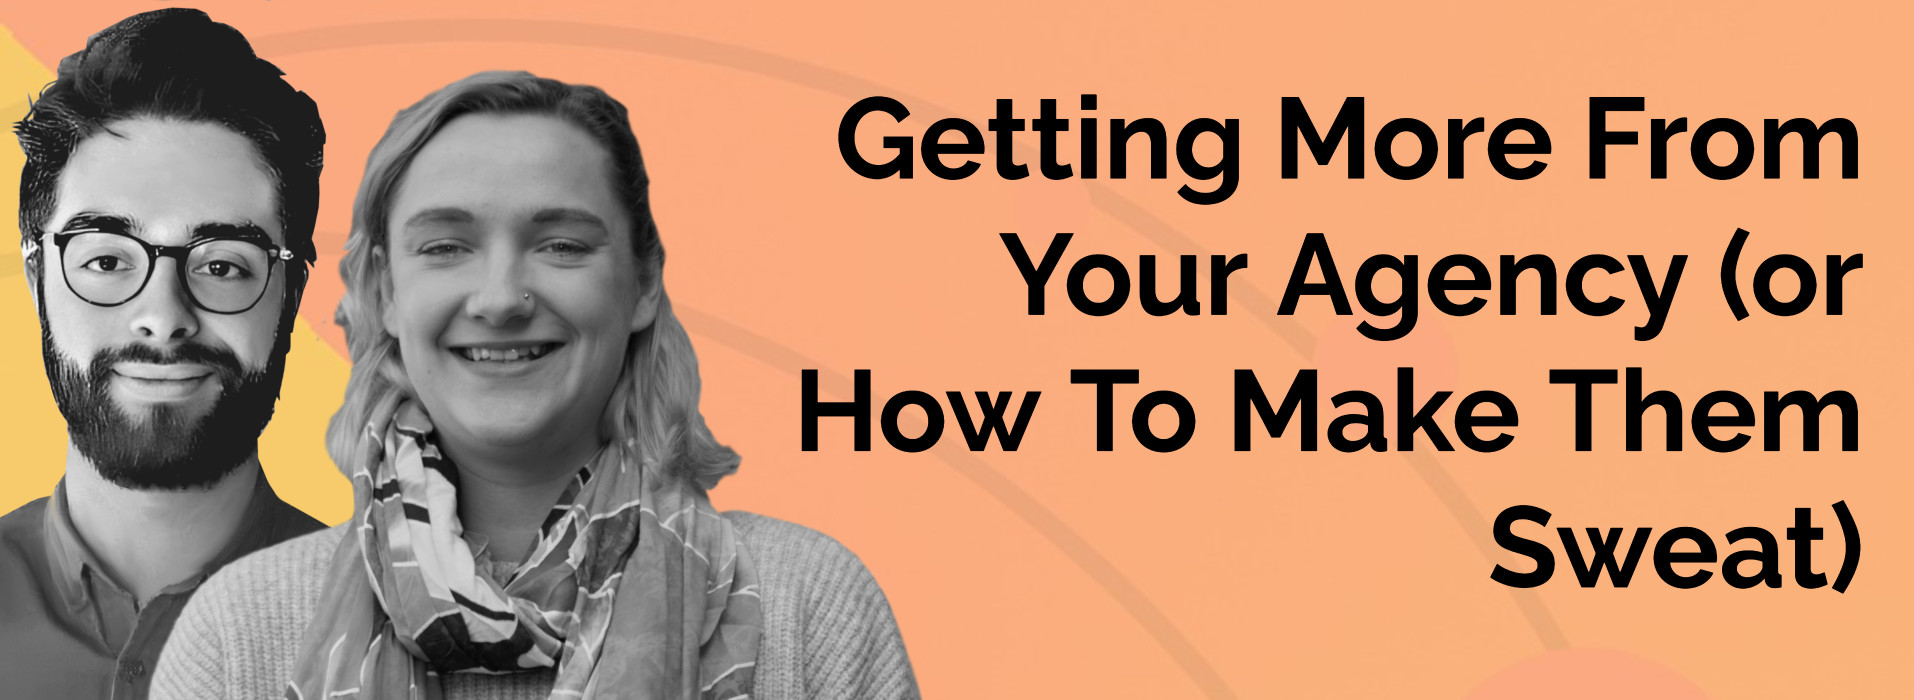 Getting More From Your Agency - or How To Make Them Sweat